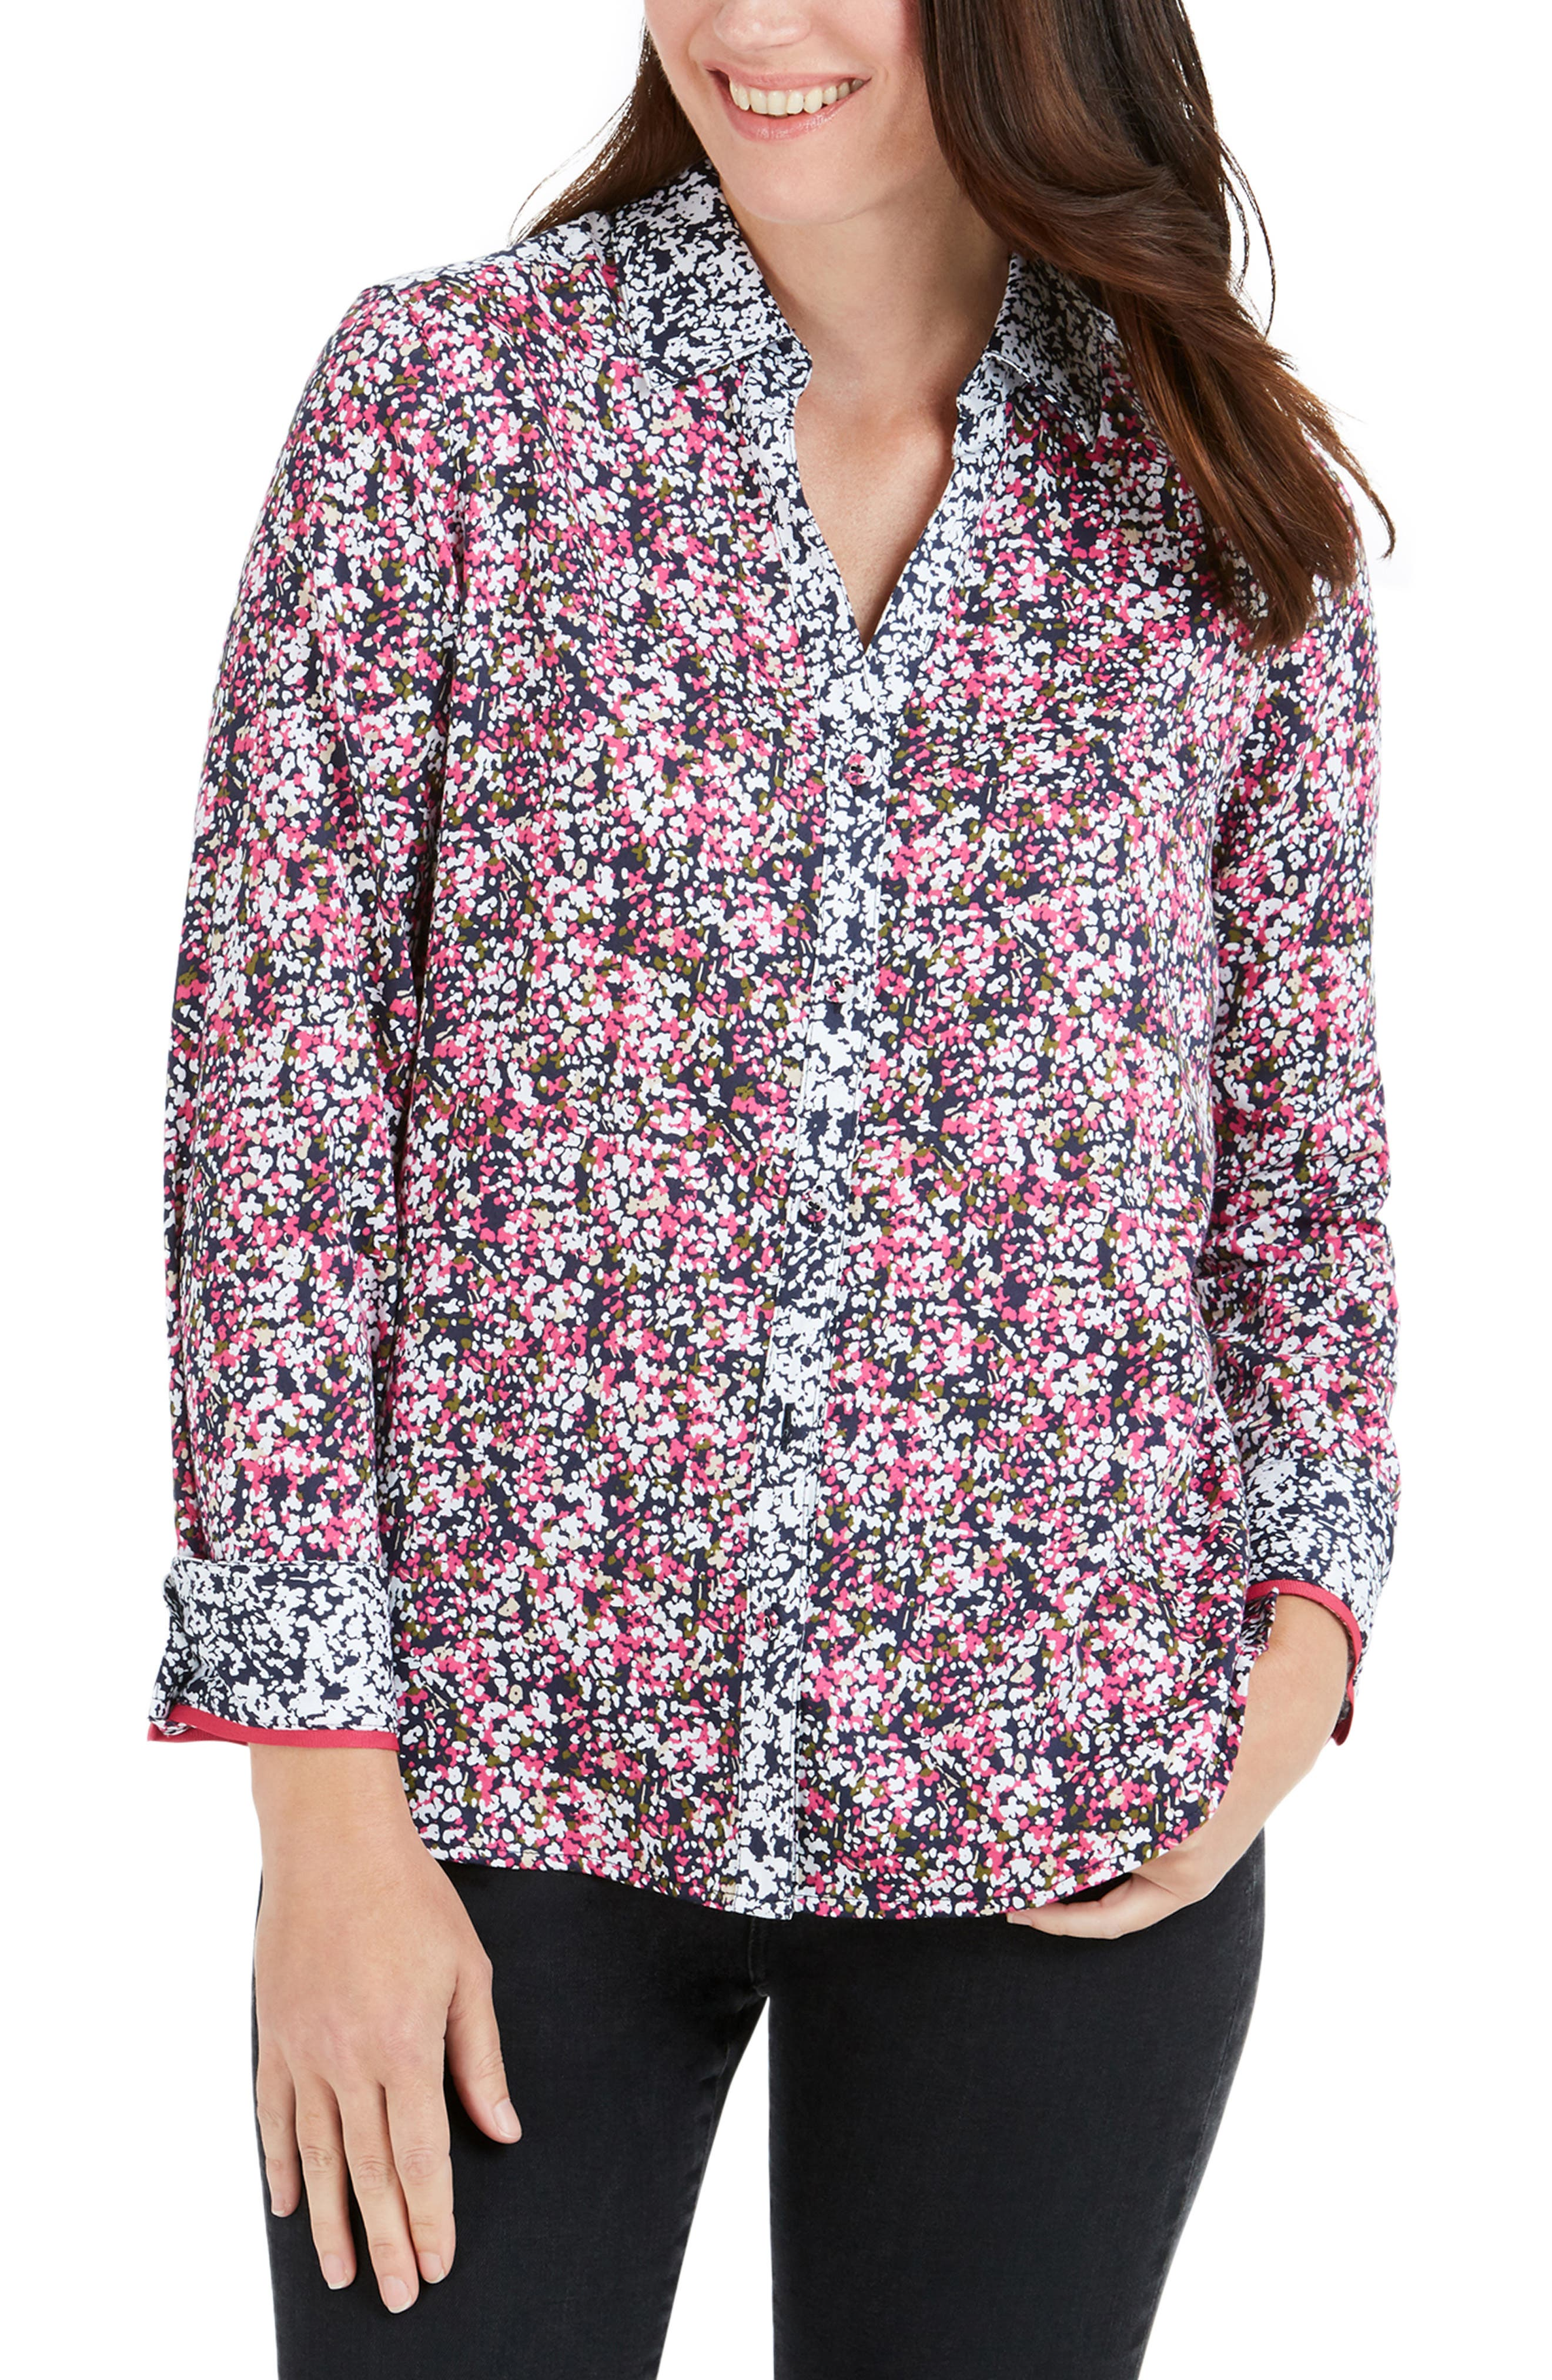 FOXCROFT Mary Garden Party Wrinkle Free Shirt, Main, color, MULTI